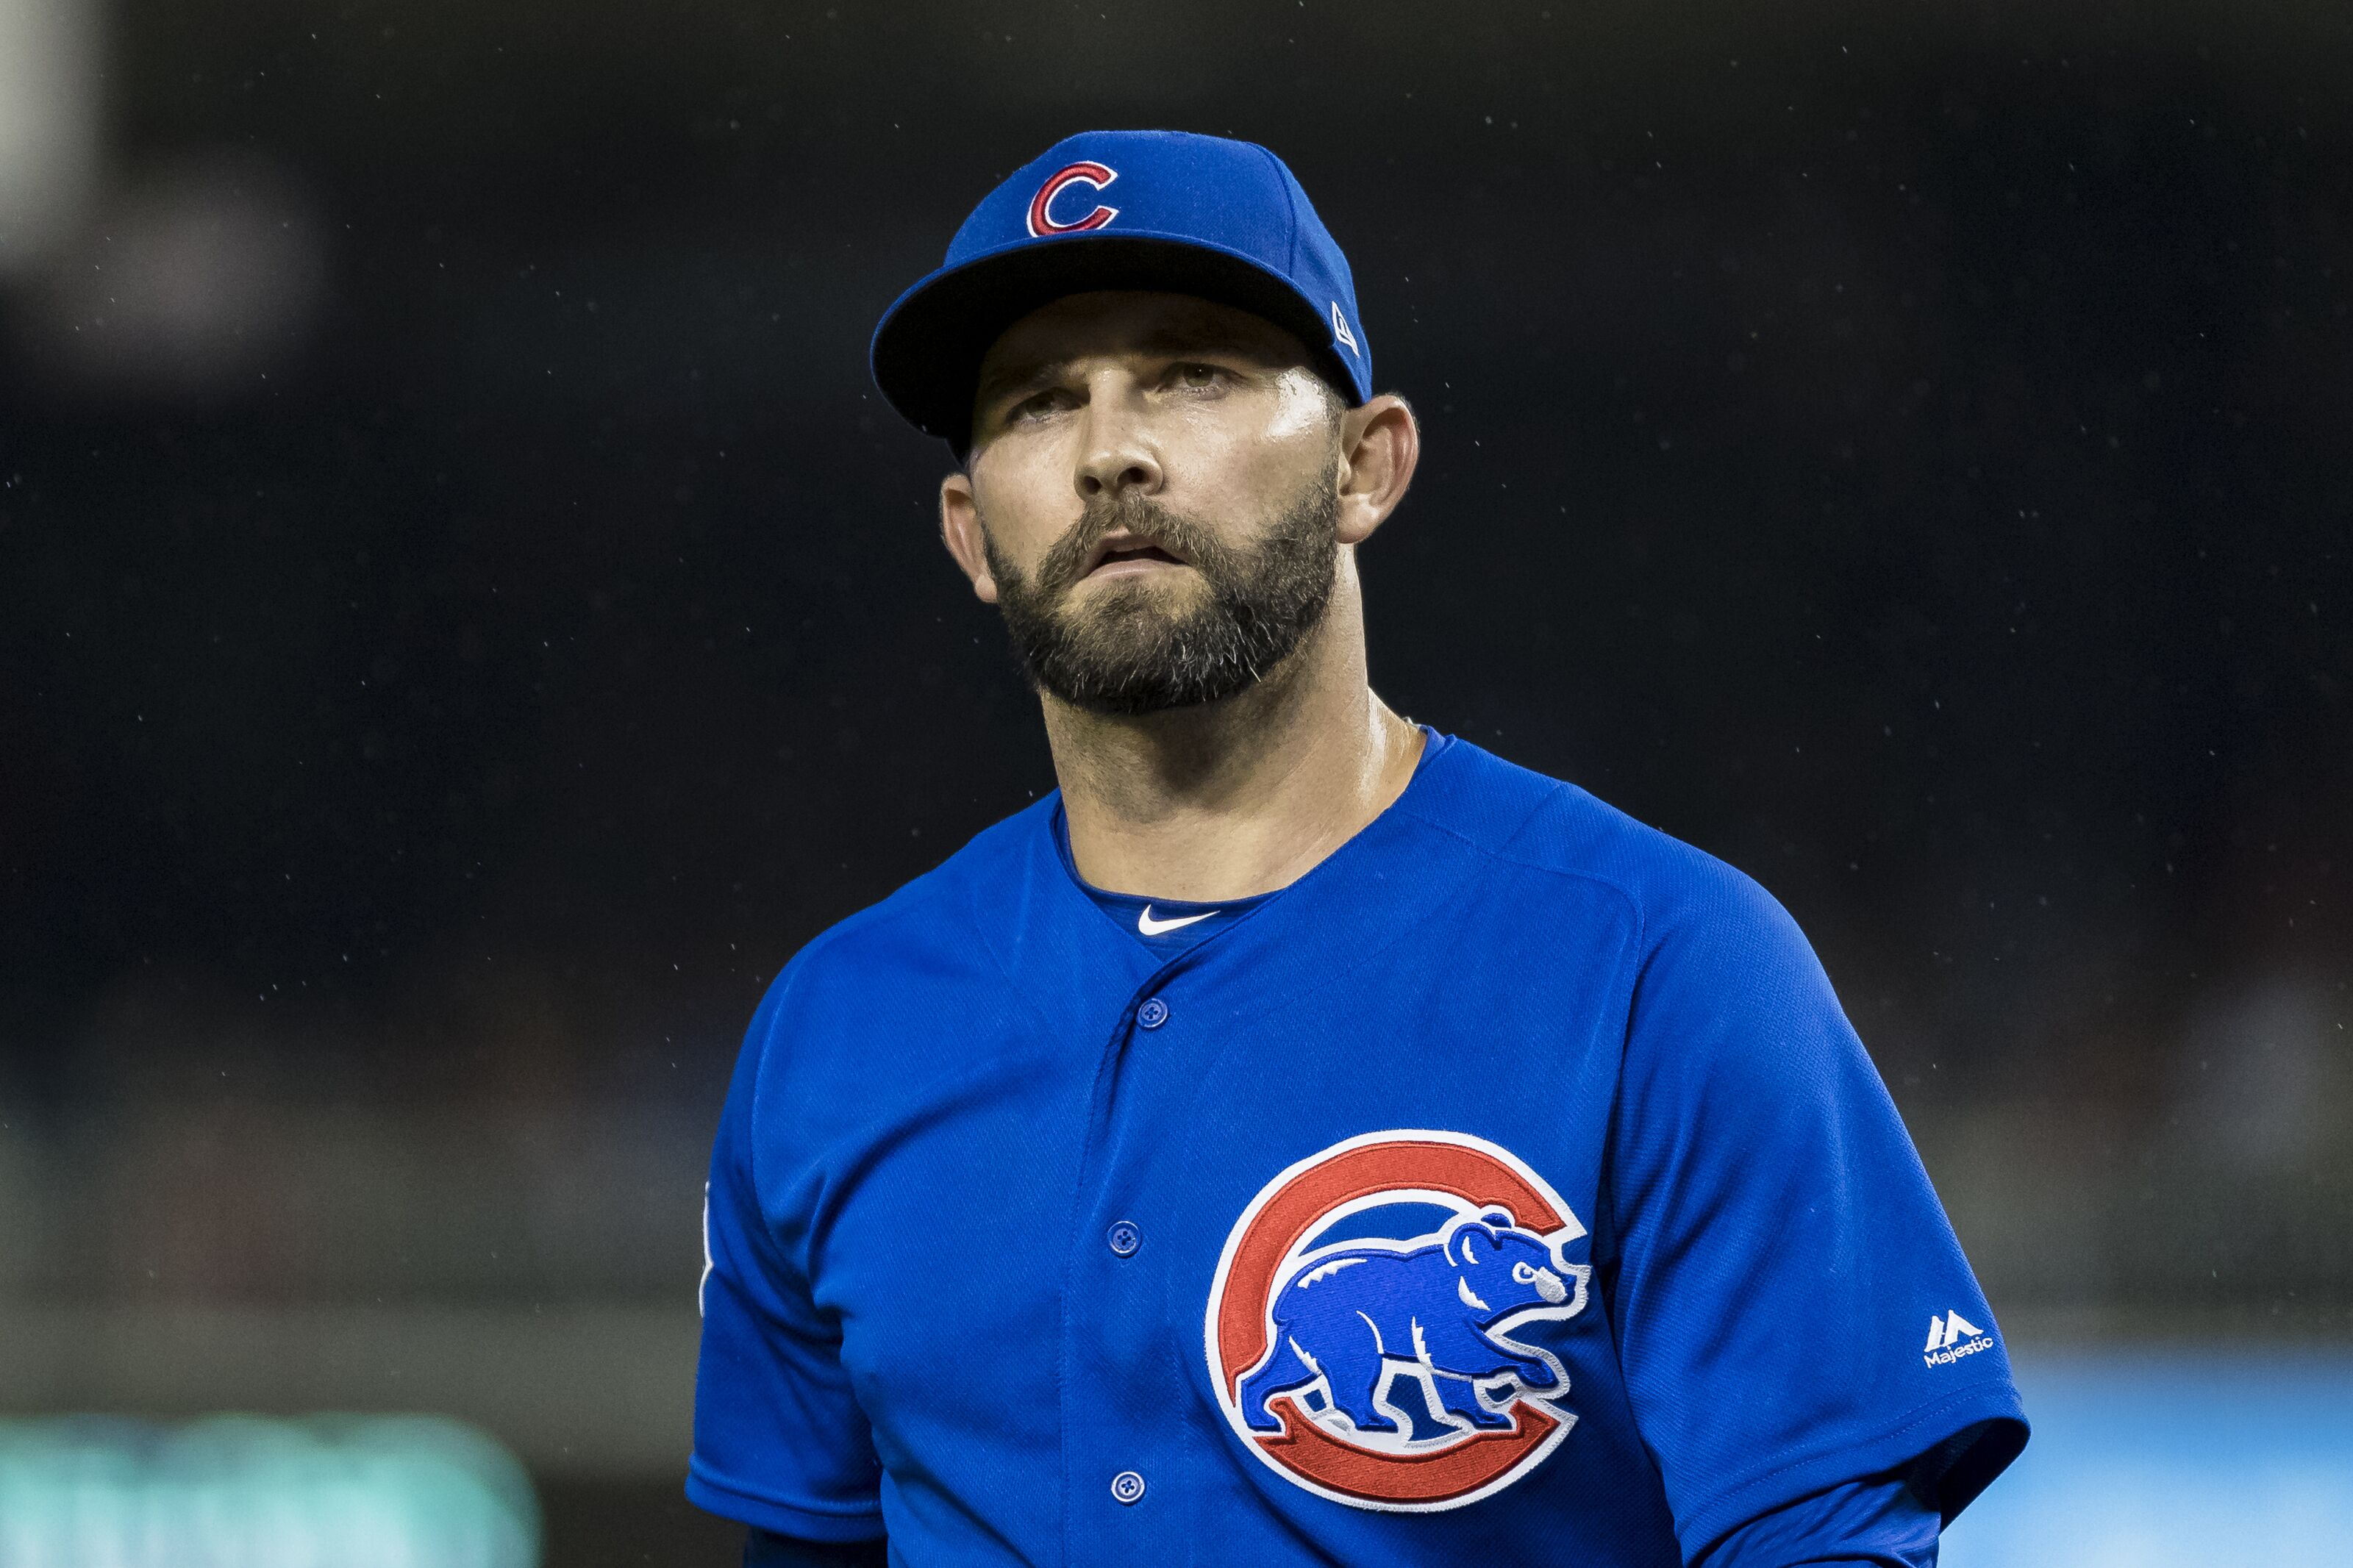 Chicago Cubs: Tyler Chatwood may have fixed a mechanical flaw